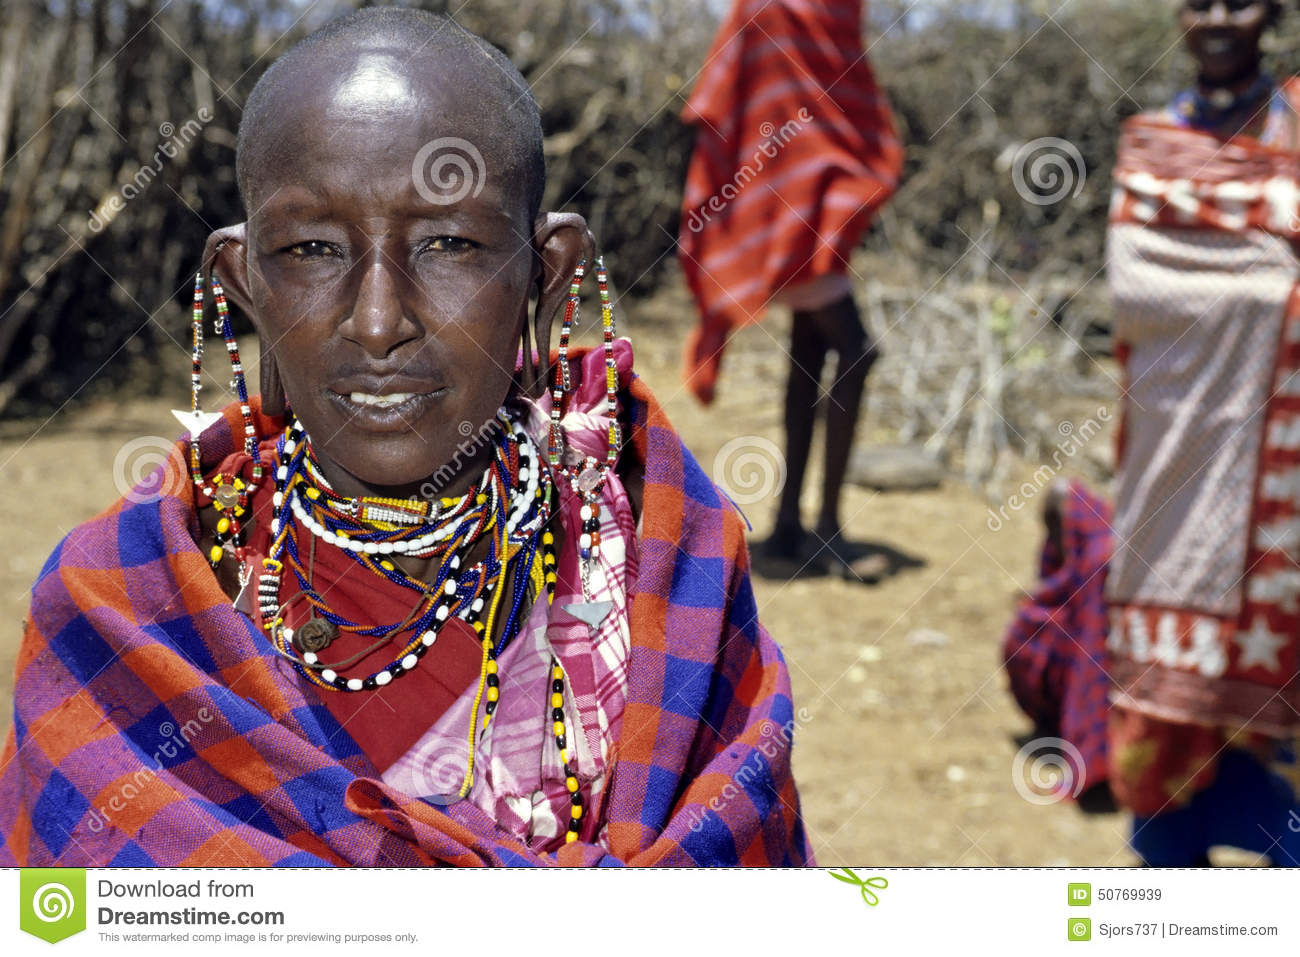 Portrait of Masai woman and colorful beads jewelry